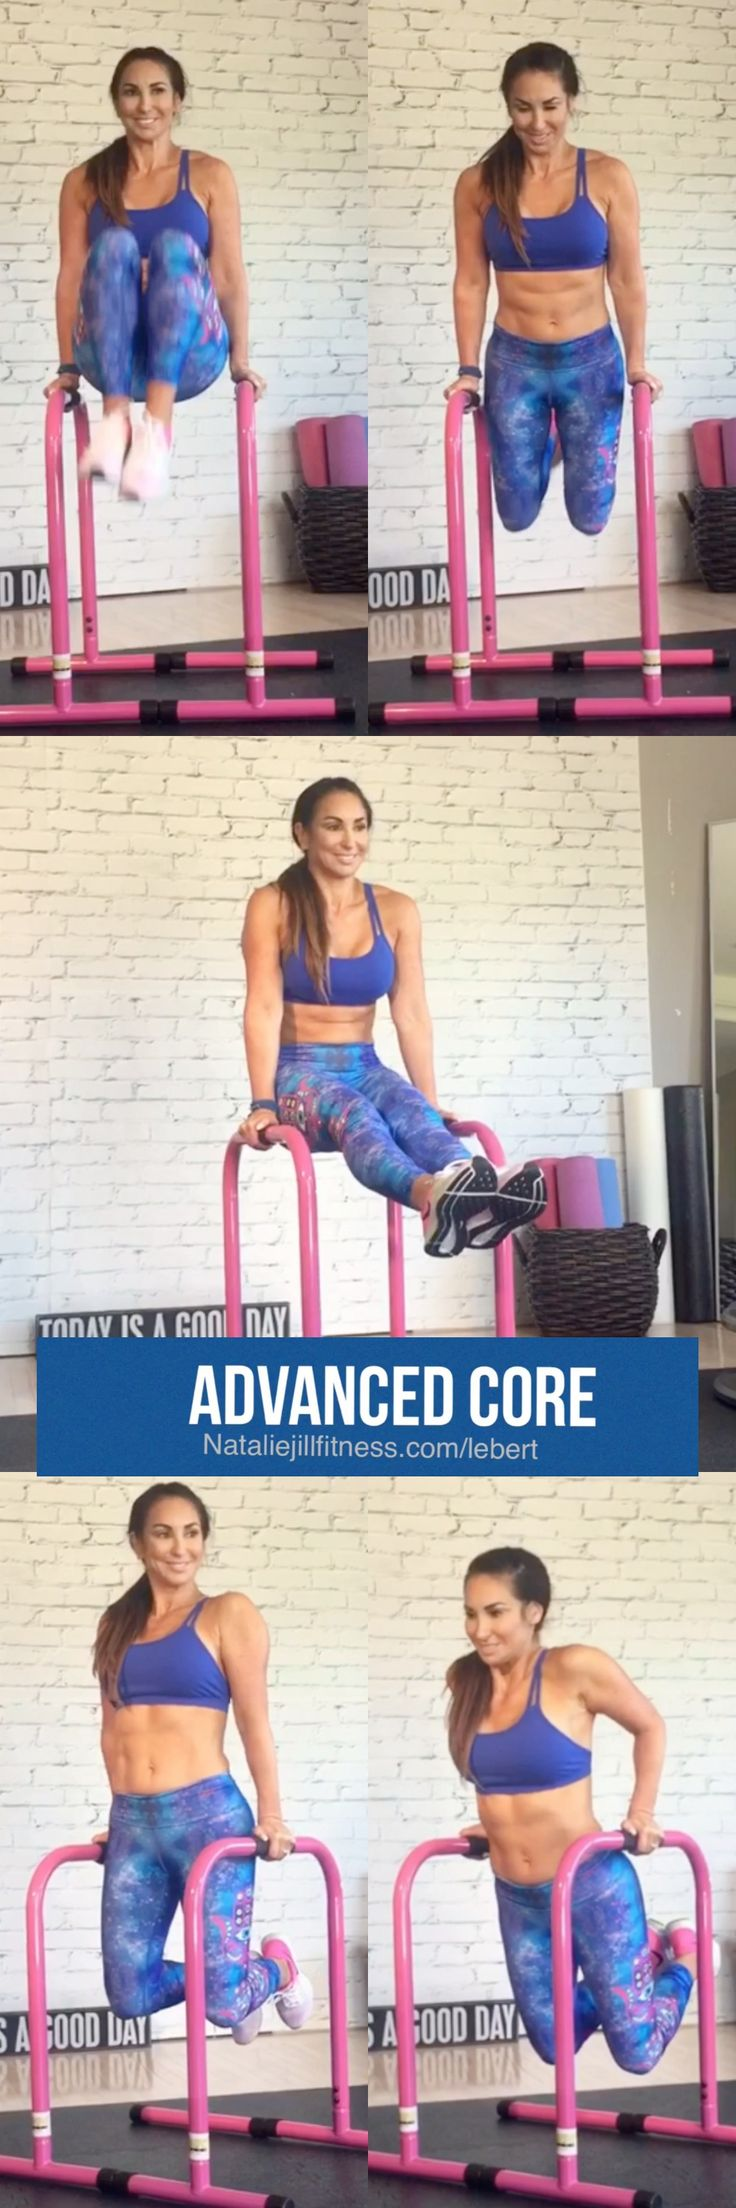 Advanced core Today! Using bars, support your body between the bars with your arms, knees bent. Bring your knees toward your waist then lower back down.  Then extend your legs straight out and hold the position.  Next, with legs down and your knees bent, bend your elbows lowering your body then push back up doing tricep dips. Are you IN?!